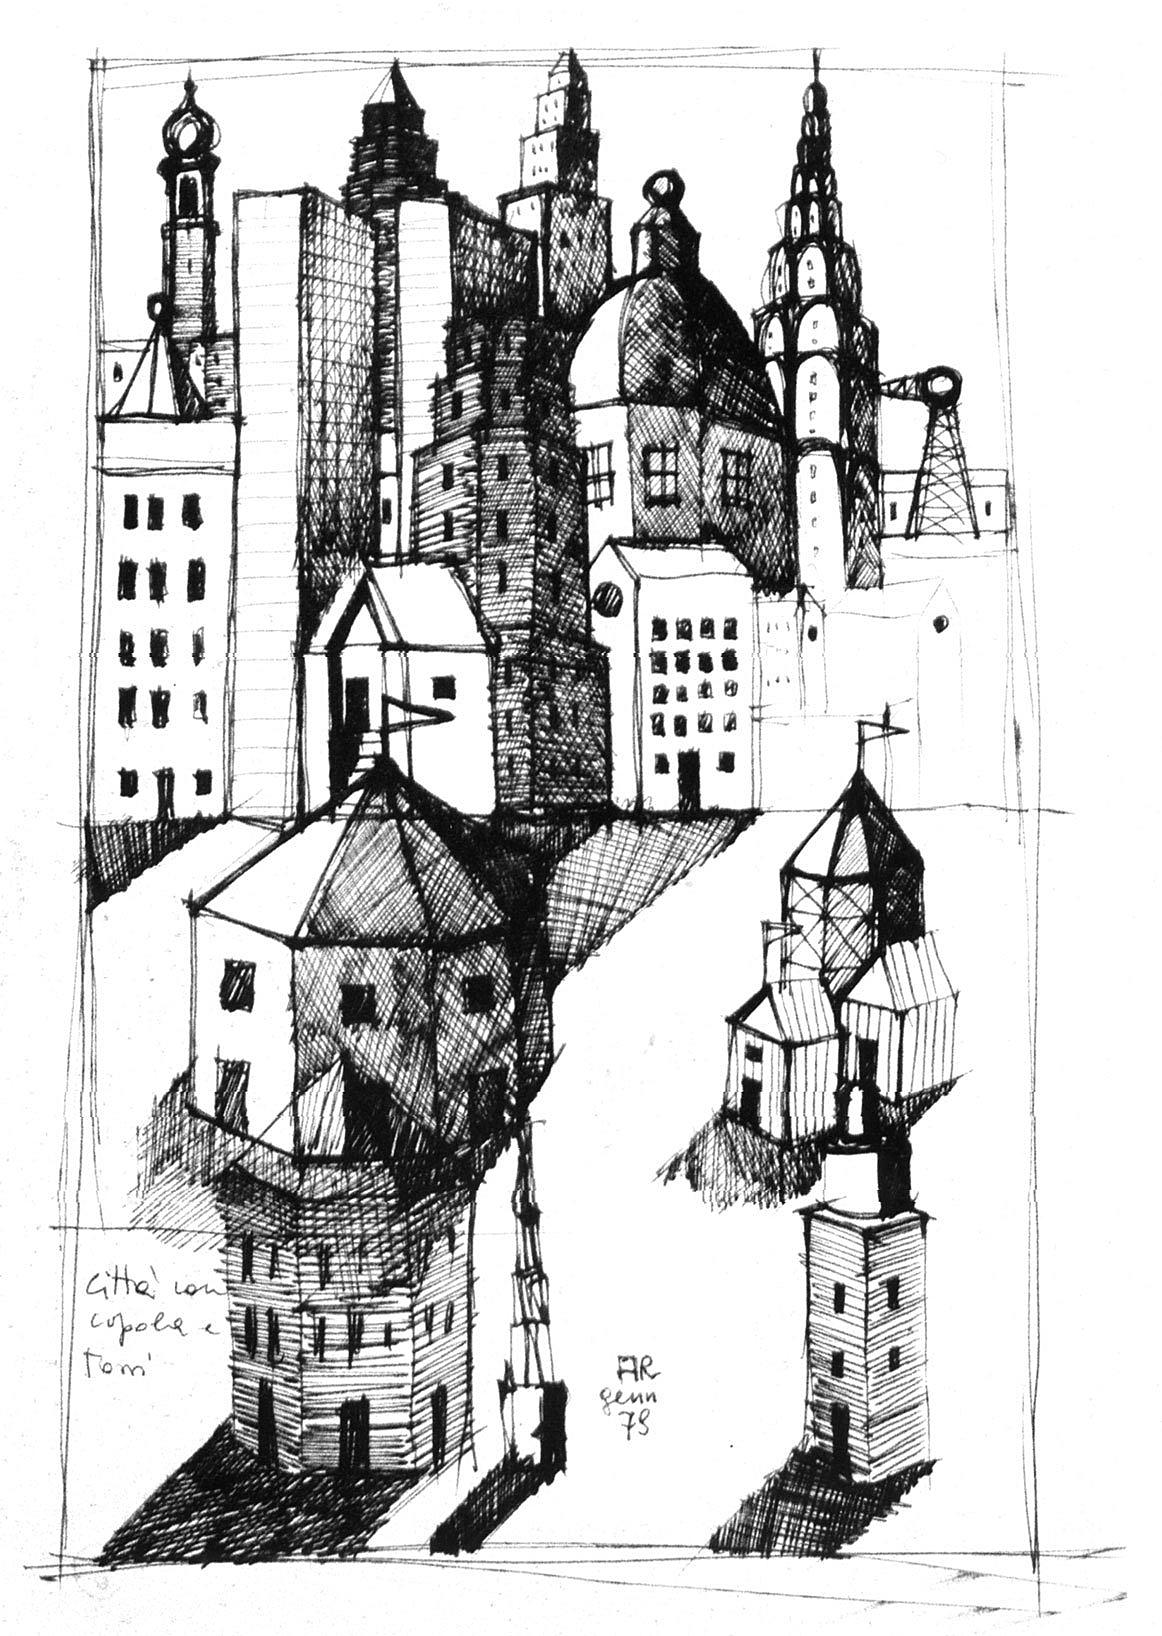 Aldo Rossi: City with cupola and towers, 1978, fra Aldo Rossi – buildings and projects. Rizzoli 1985